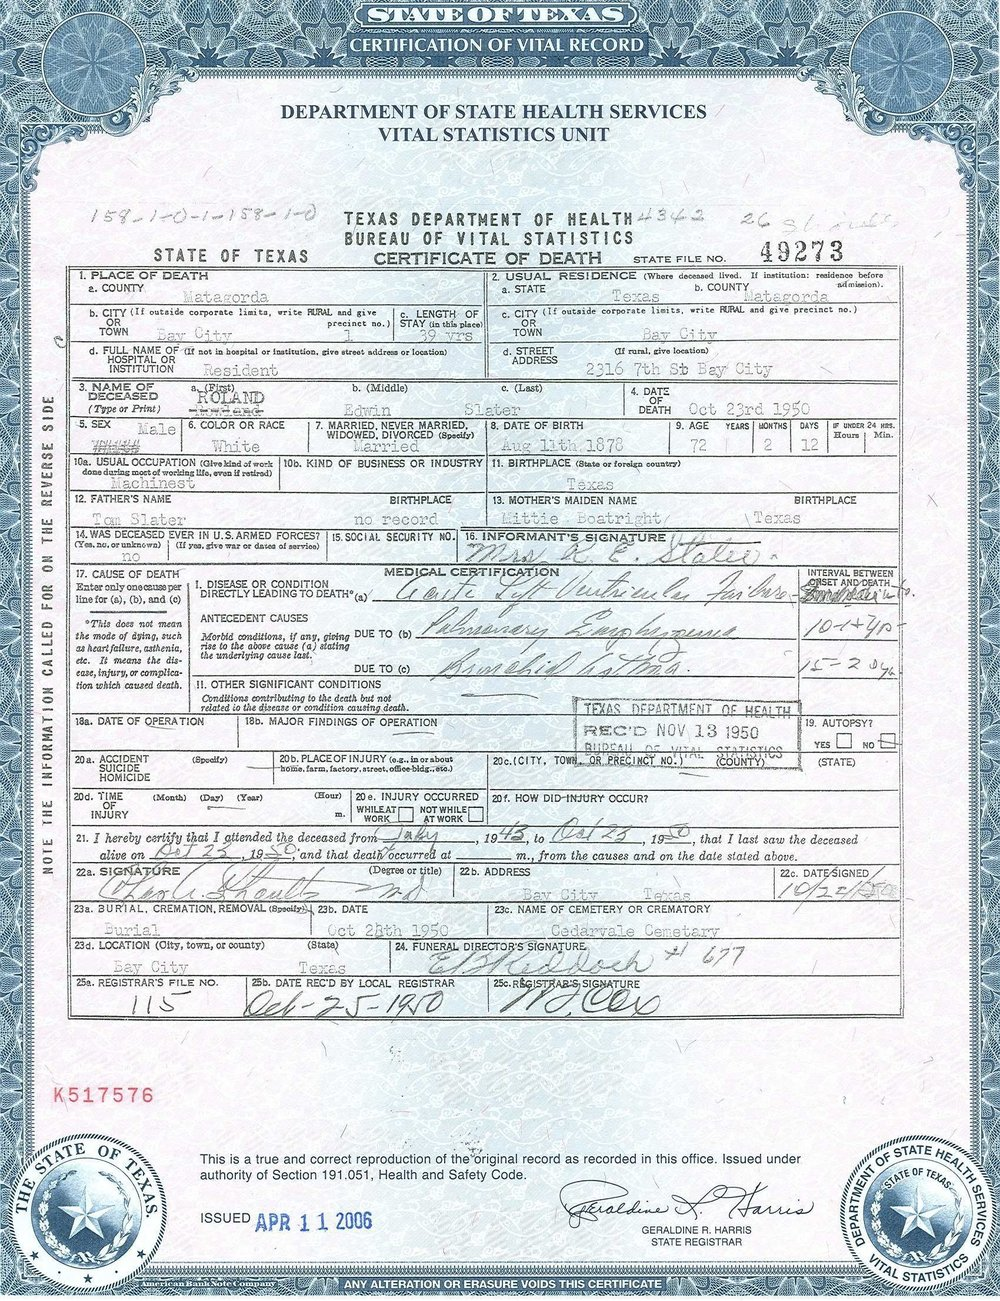 death-certificates-texas-awesome-death-certificate-texas-template-image-collections-certificate-of-death-certificates-texas.jpg